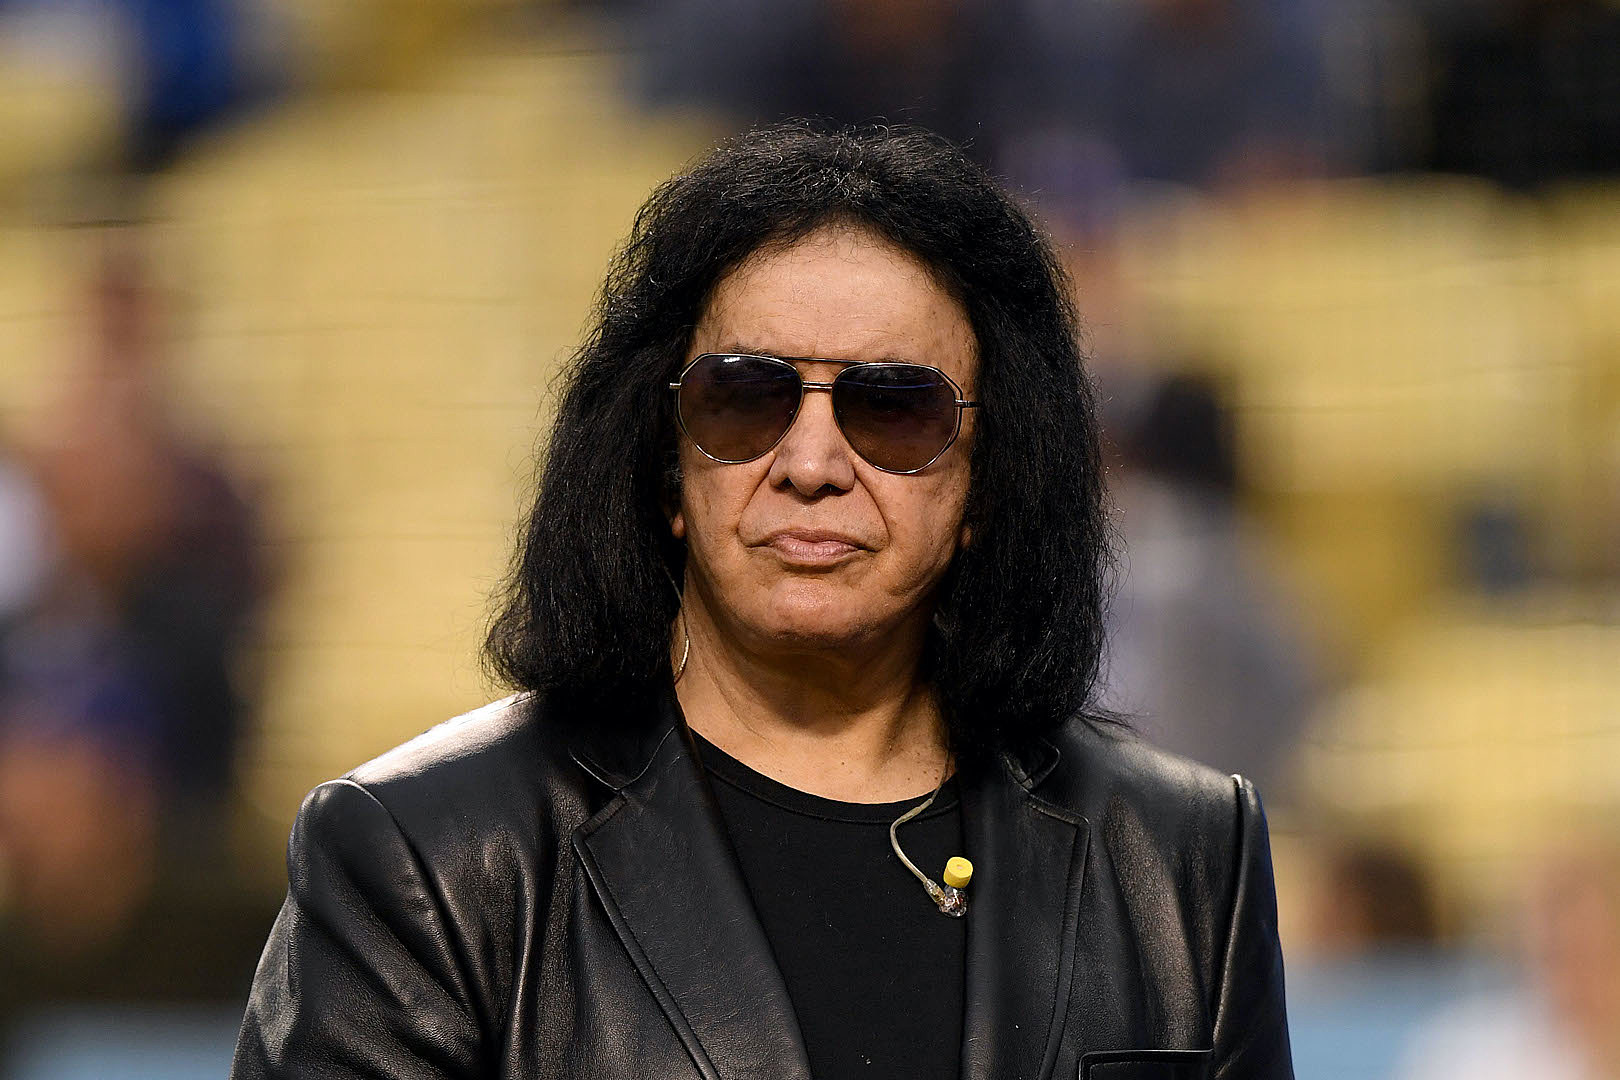 Gene Simmons Blasts Politician Who Asks to Alter Moon's Orbit